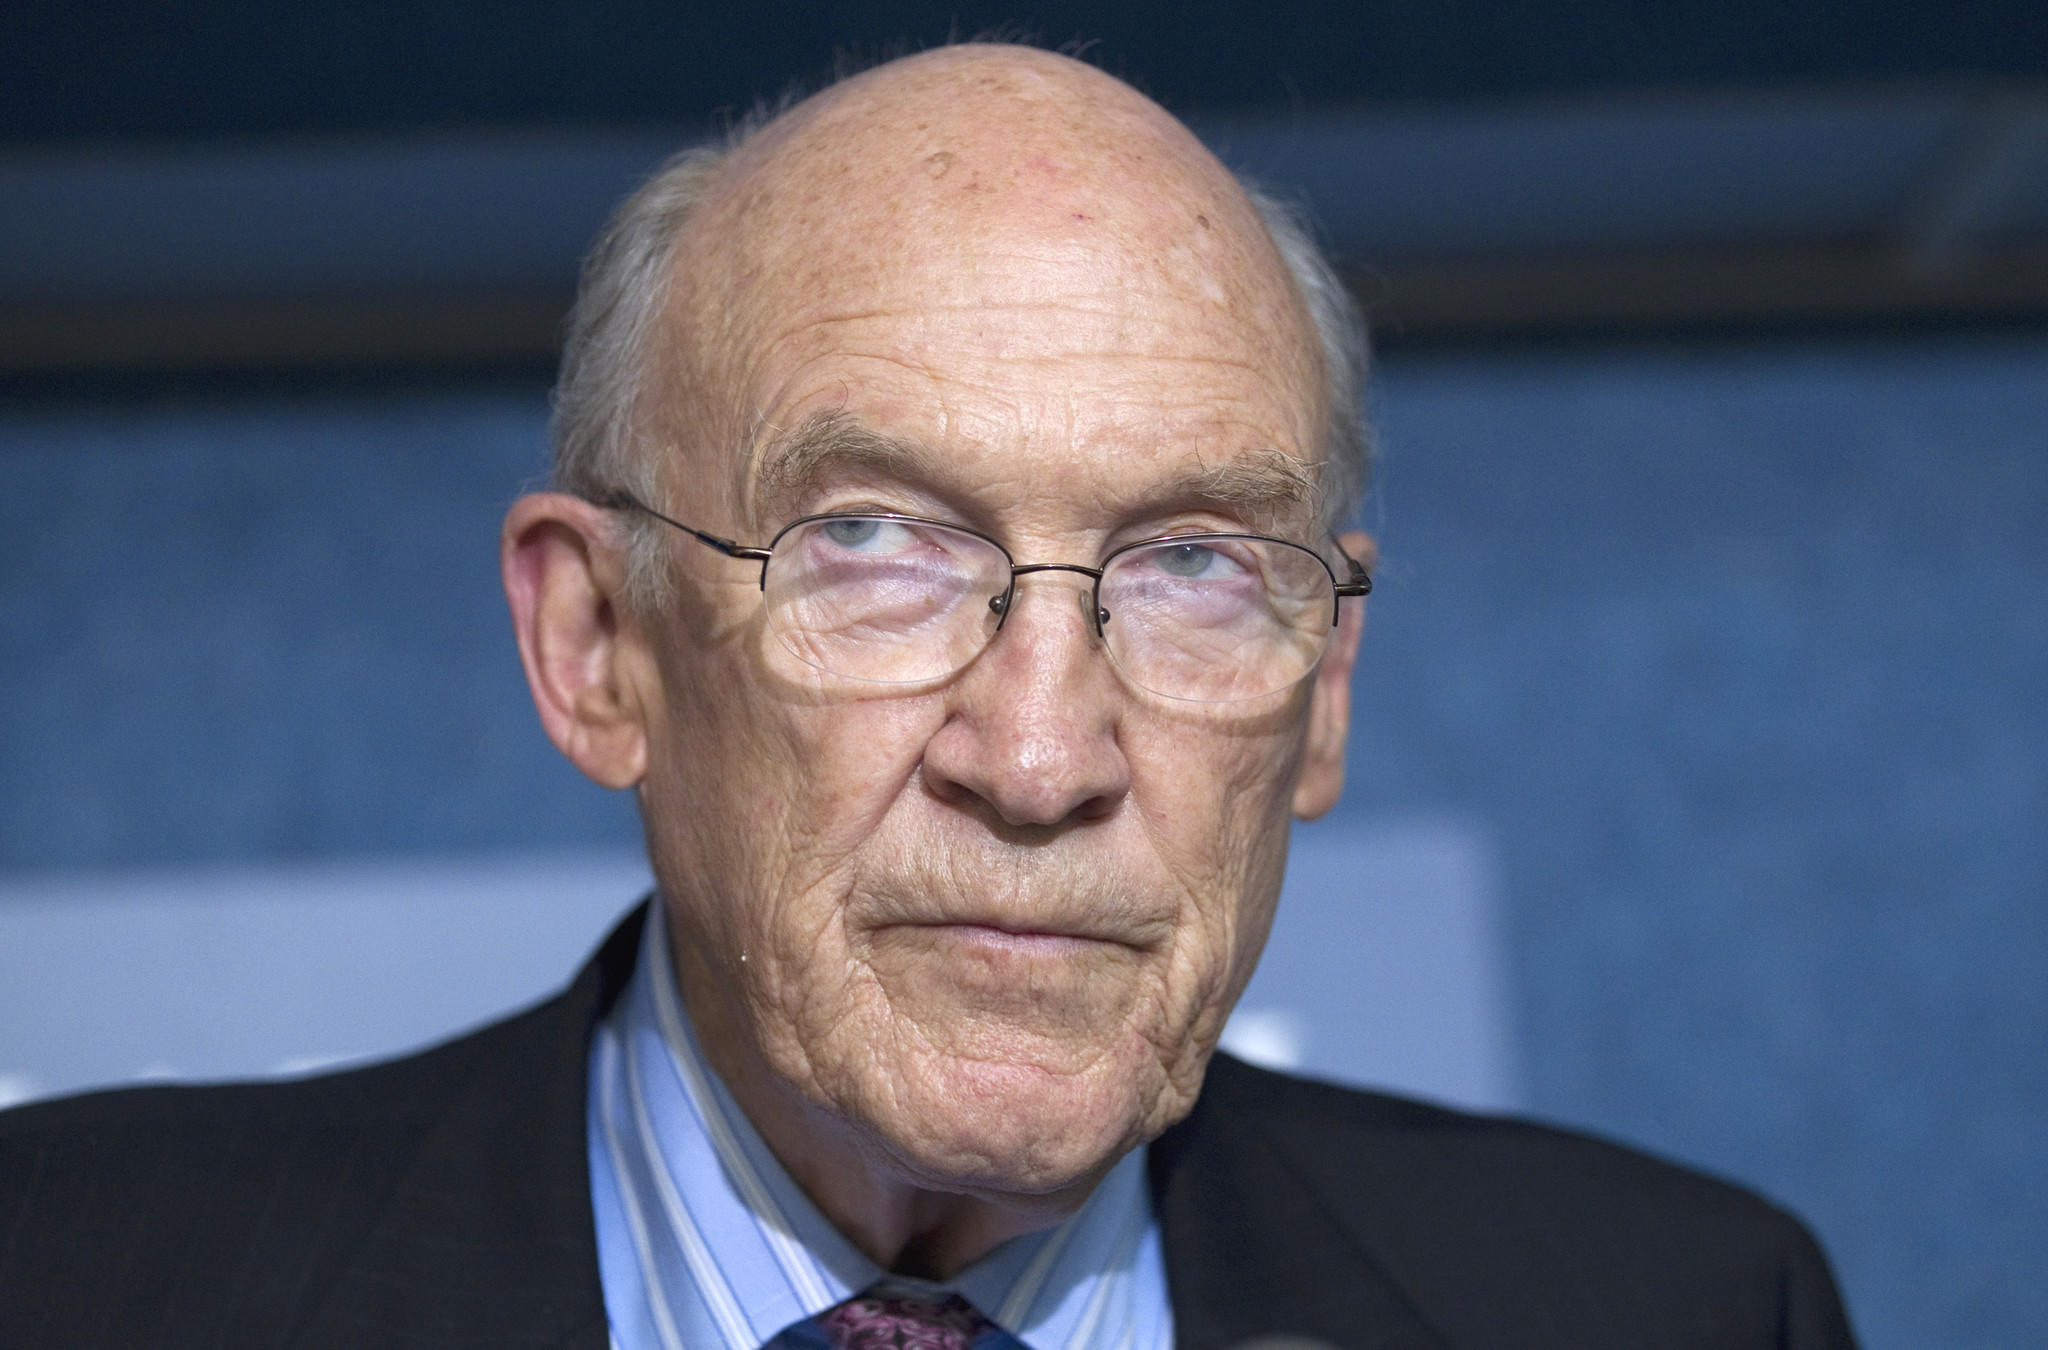 Former U.S. Alan Simpson of Wyoming and other Western Republicans have come out in support of legalizing gay marriage in Utah and Oklahoma, arguing that allowing same-sex unions is consistent with the Western conservative values of freedom and liberty once championed by Ronald Reagan and Barry Goldwater.